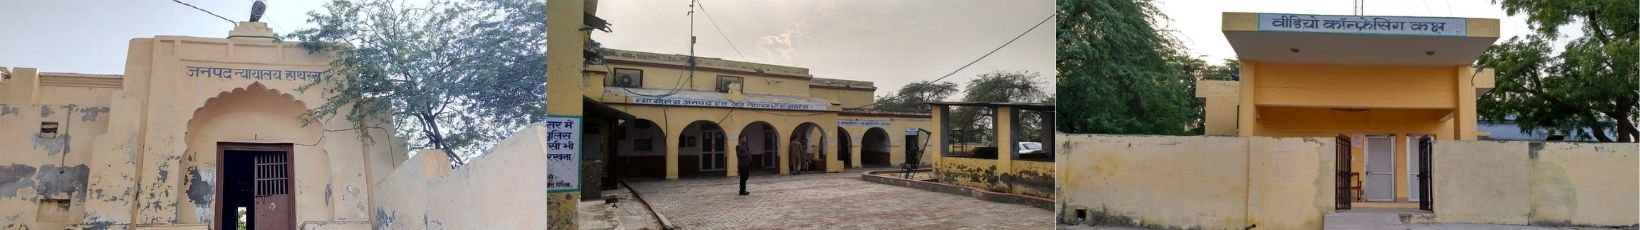 District and Sessions Court, Hathras